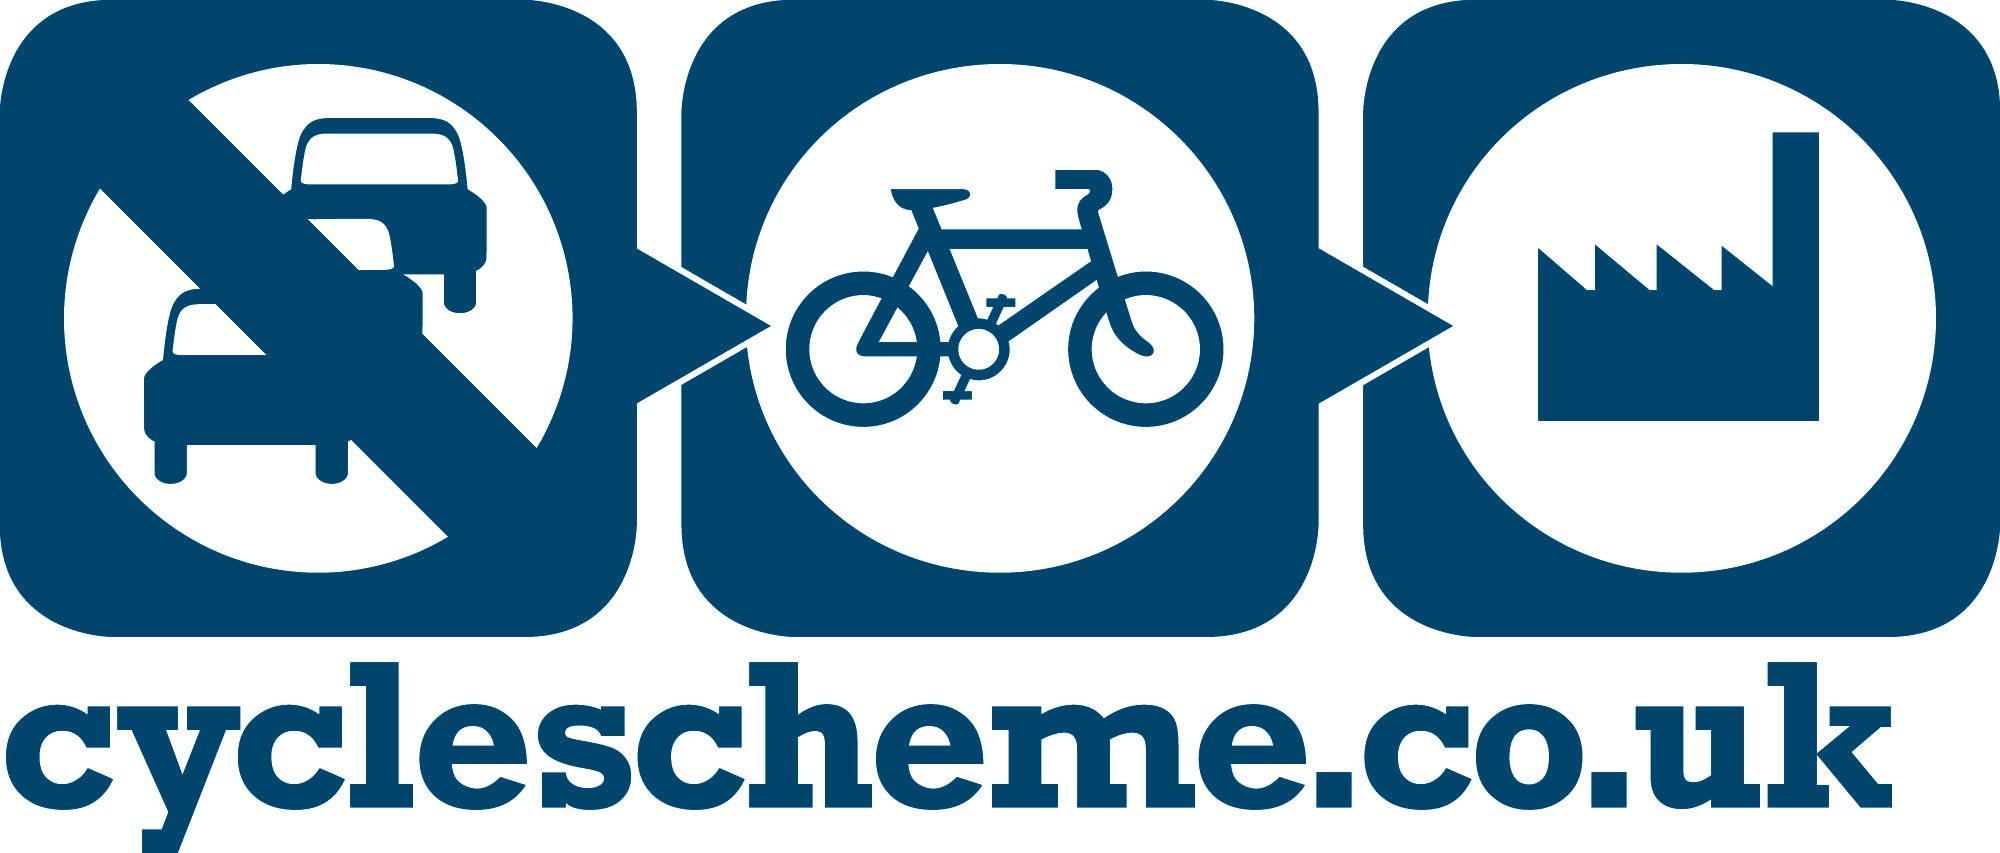 cycle scheme logo